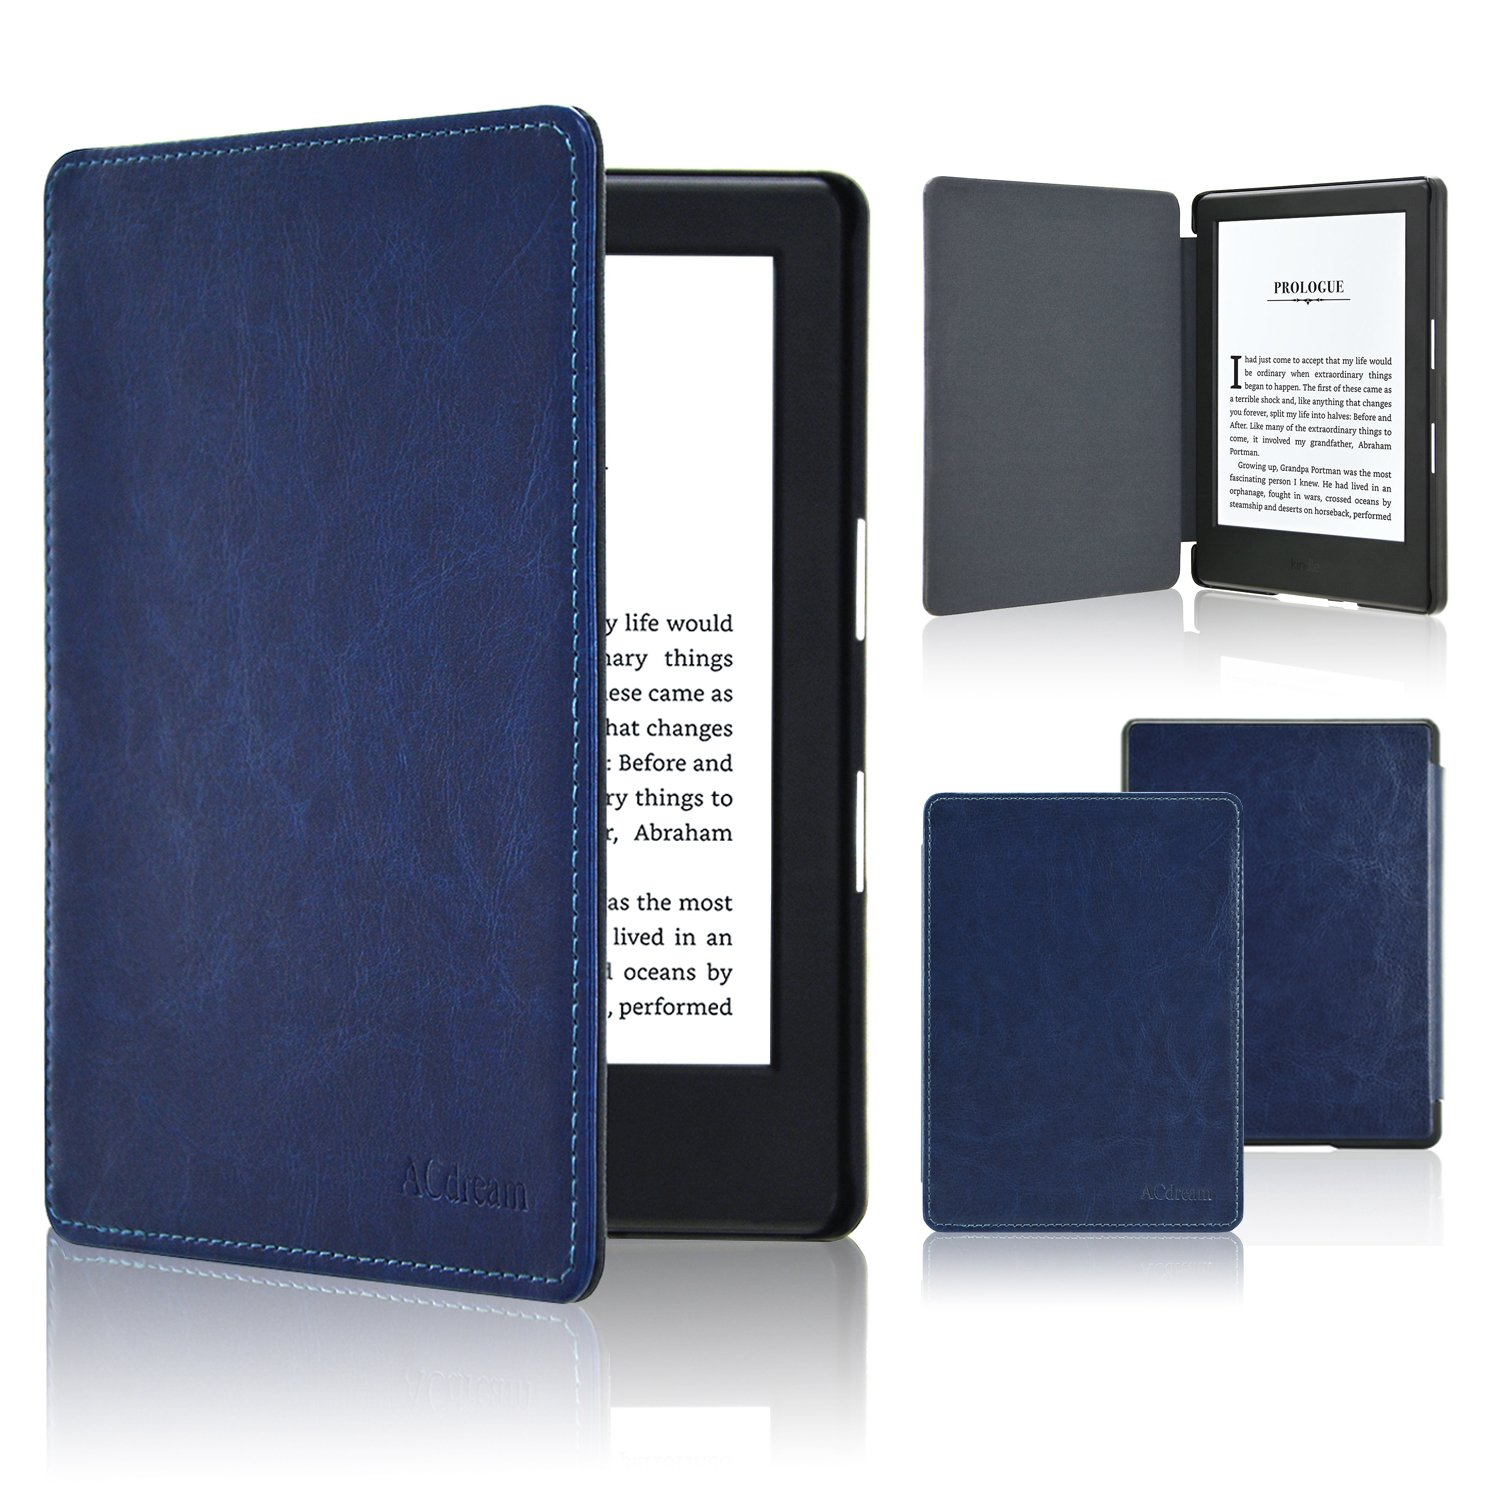 ACdream Case for All-New Kindle E-reader (8th Generation 2016), The Thinnest and Lightest Cover for All-New Kindle (6'' Display, 8th Gen 2016 Release), Dark Blue